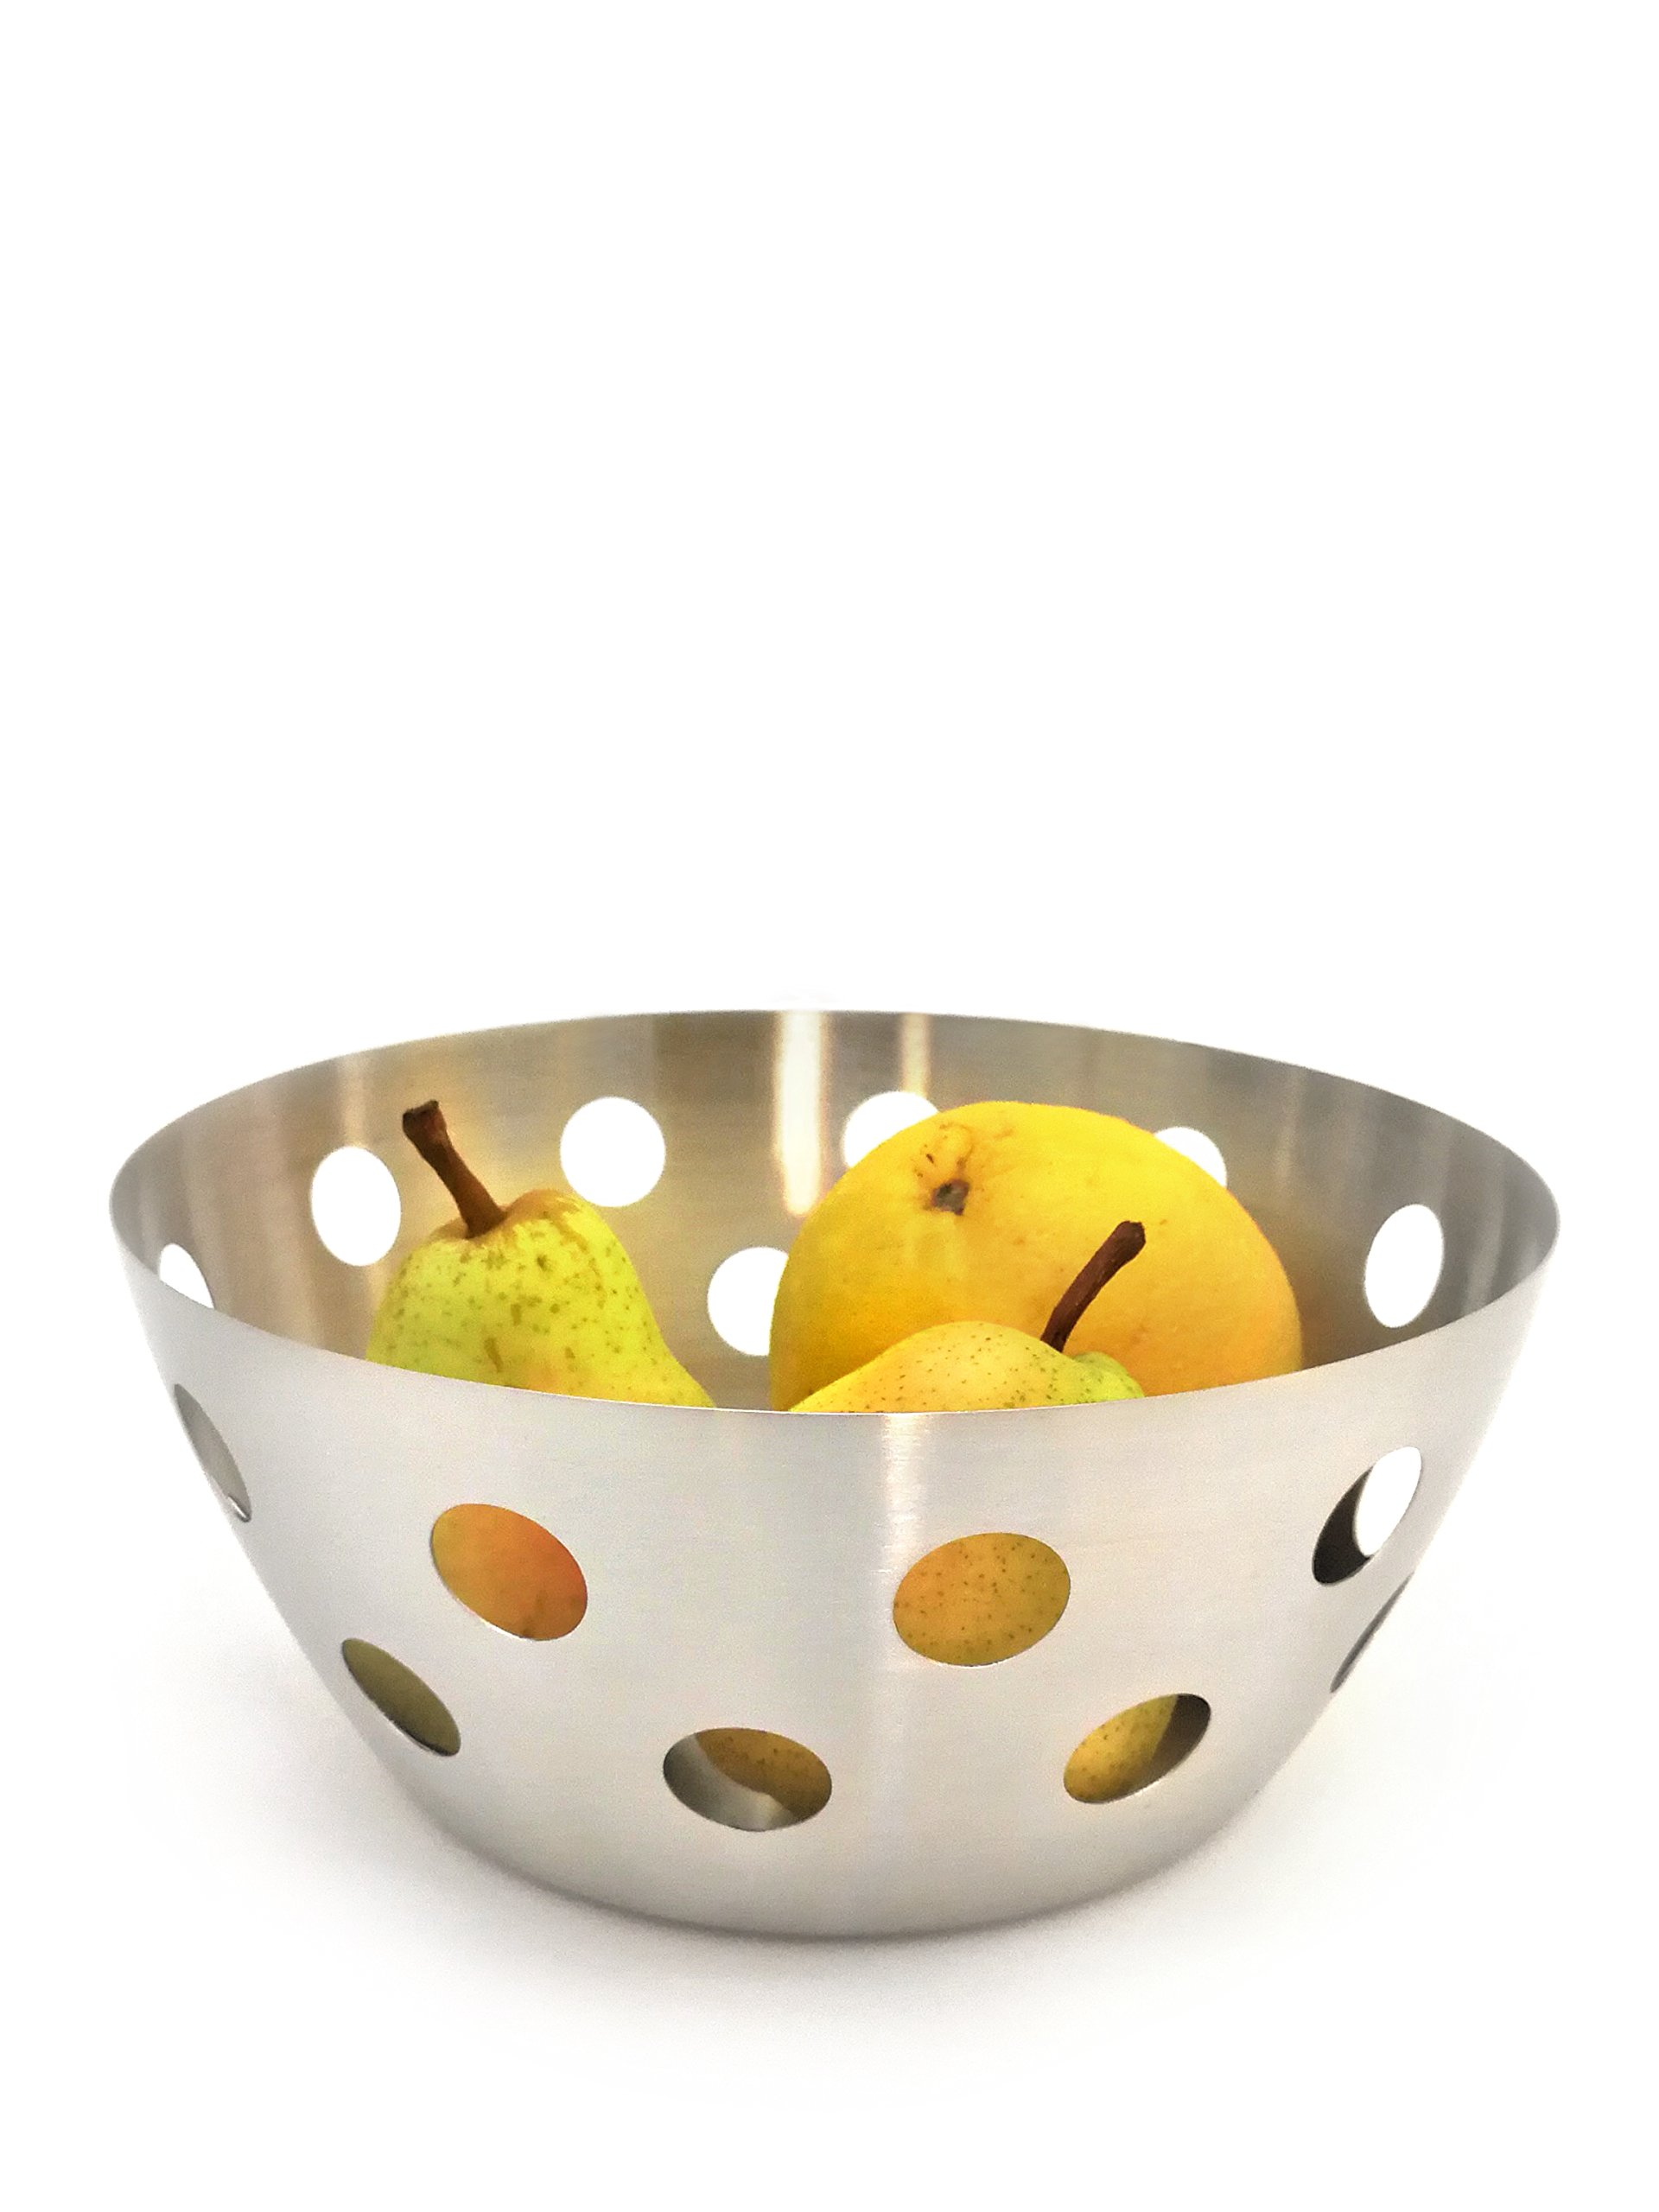 StainlessLUX 76324 Brushed Stainless Steel Fruit Bowl / Bread Basket, Round-shaped with Polka Dot Design - Fine StainlessLUX serveware for your home